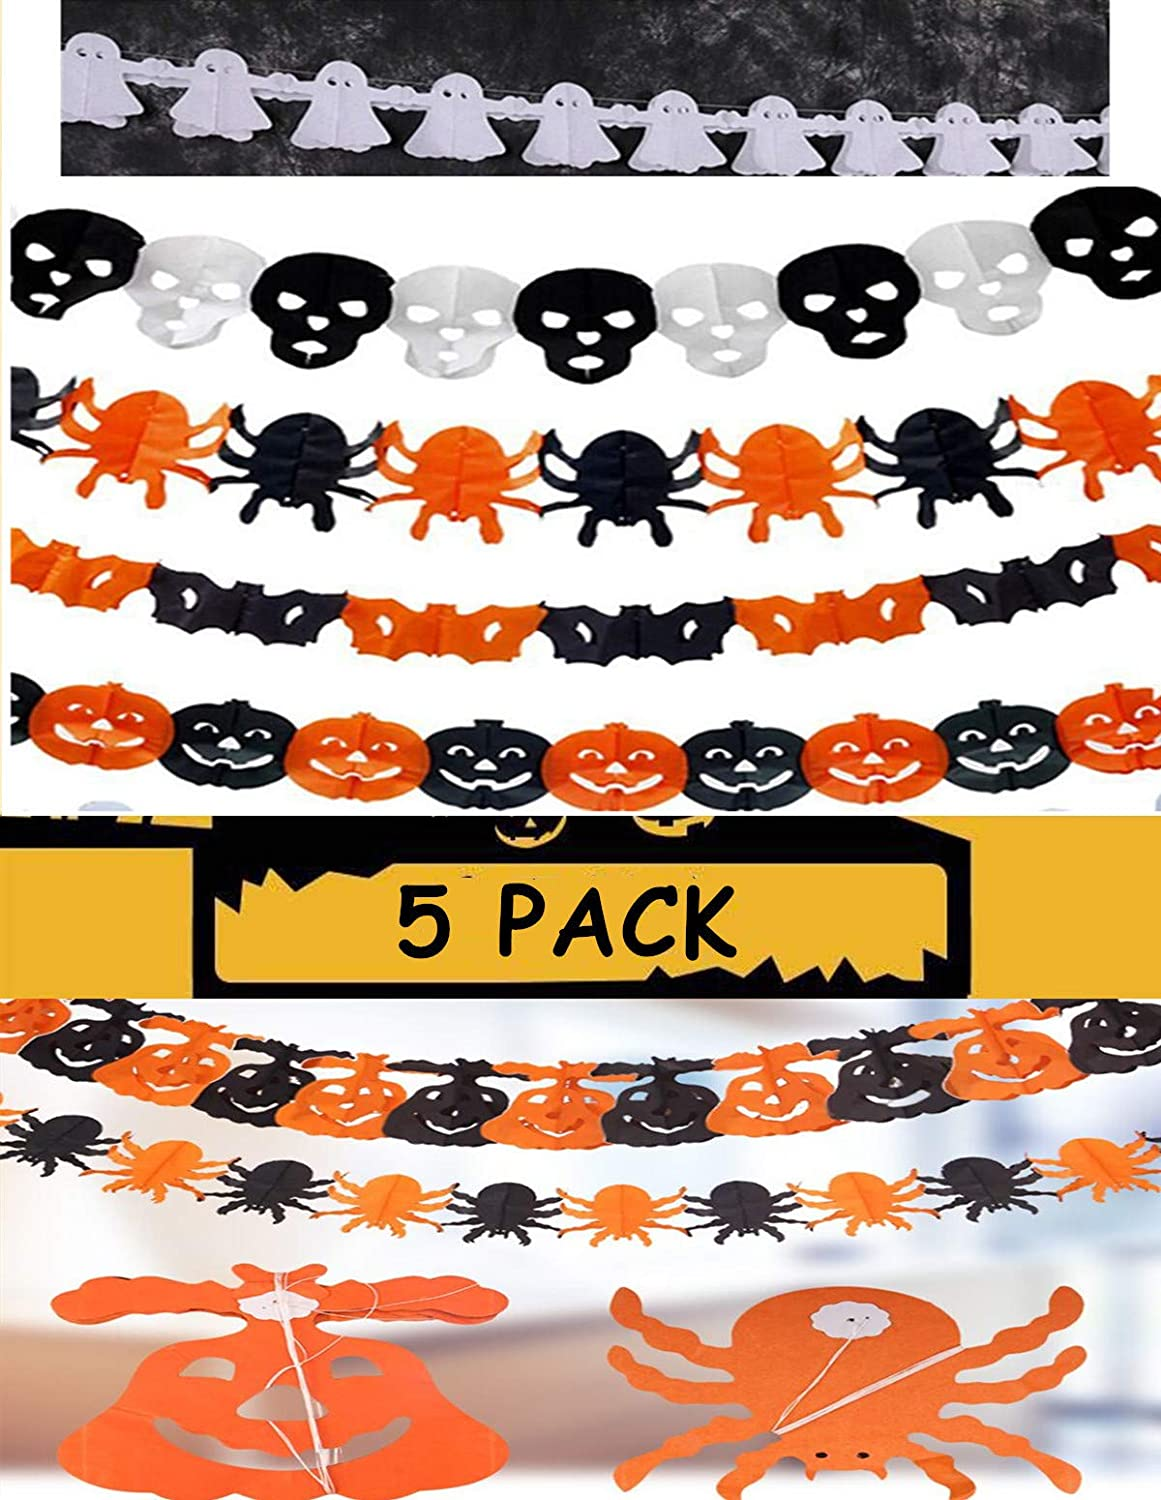 5 pack Happy Halloween Banner | Halloween Mantel Banner | Halloween Banner Indoor Outdoor | Halloween Banner Decoration | Halloween Decor for Mantle Fireplace Home Office | Halloween Party Decorations Supplies